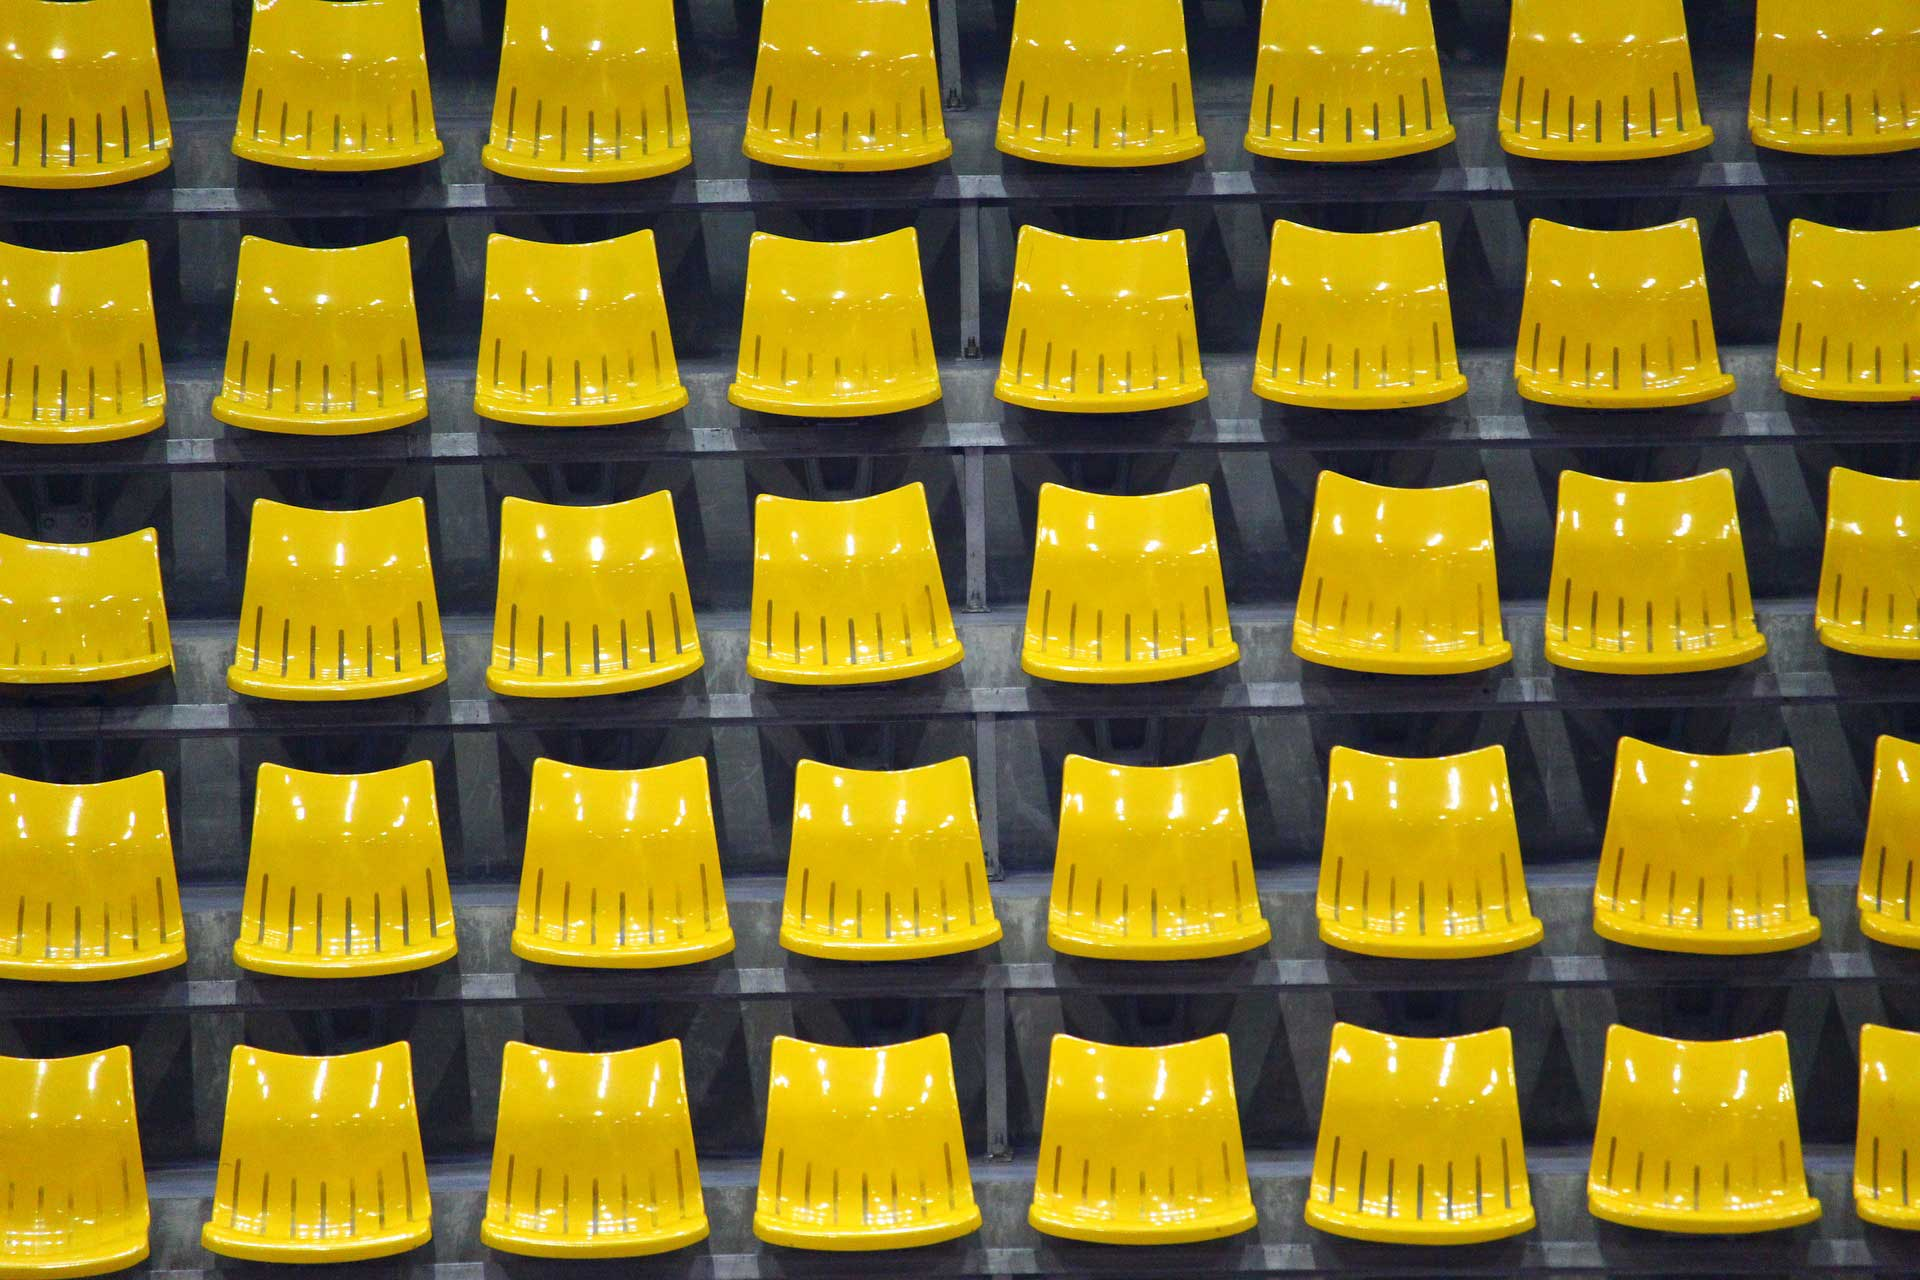 Banner image of yellow chairs aligned in multiple rows and columns